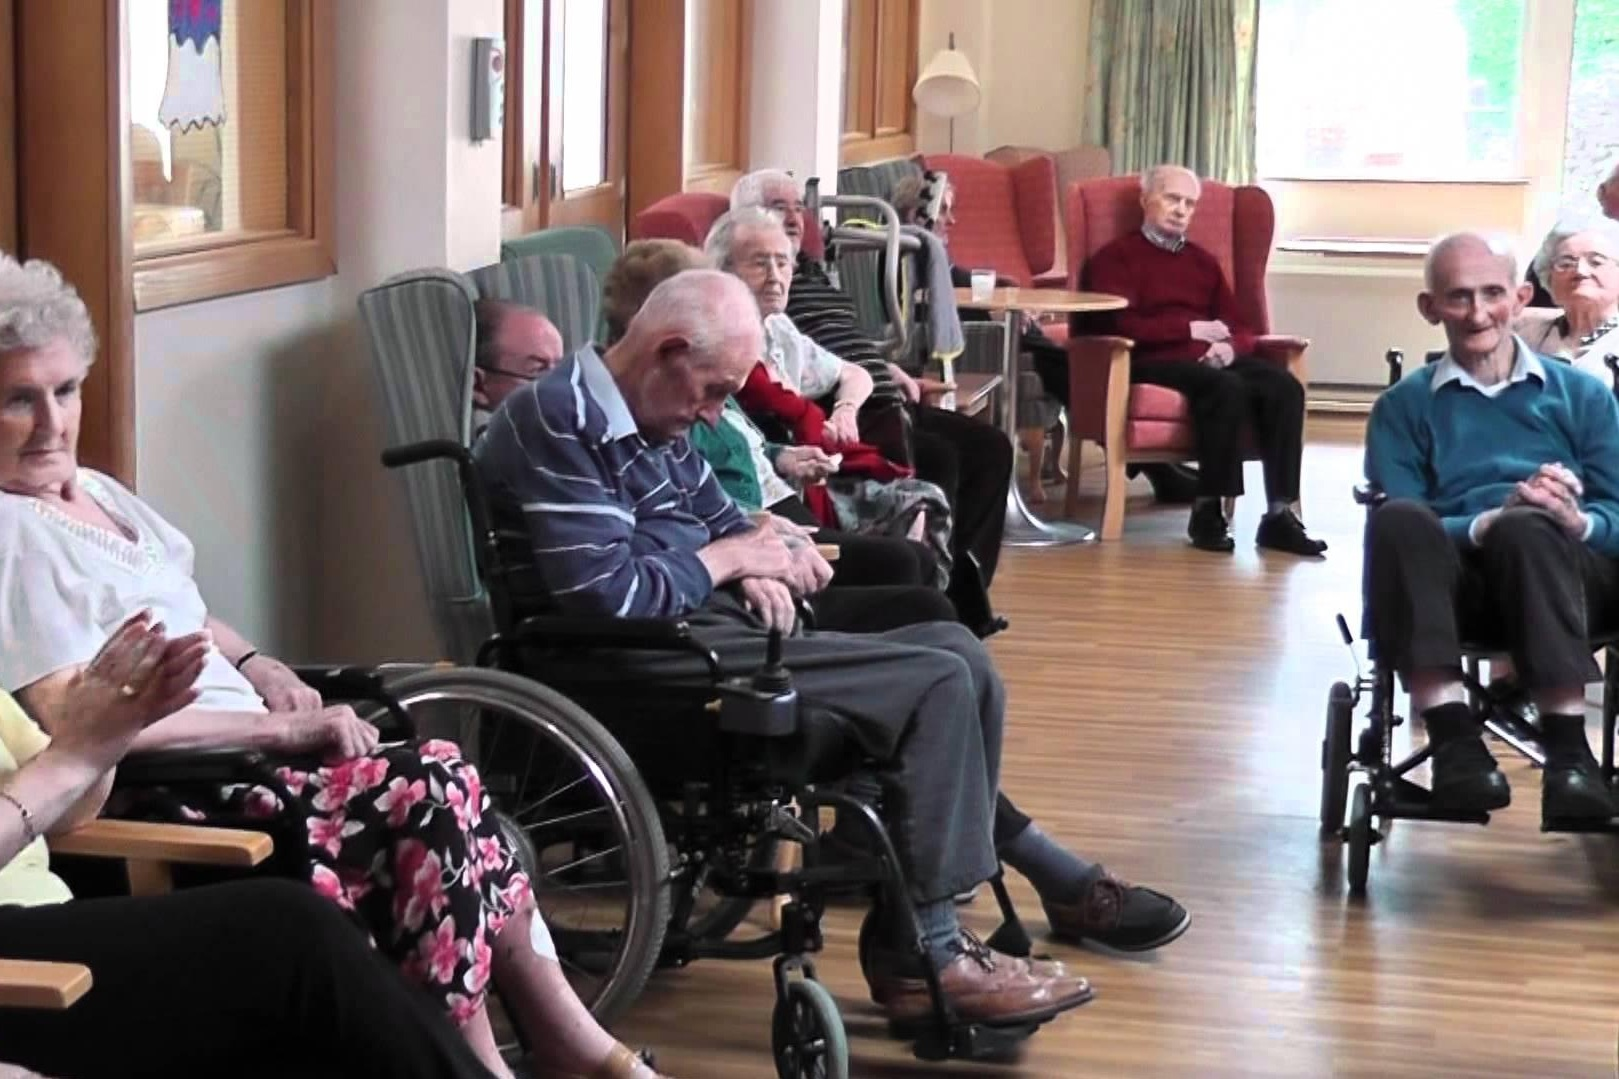 Nursing Homes are institutions. Their main roles are rehabilitation and long-term care.